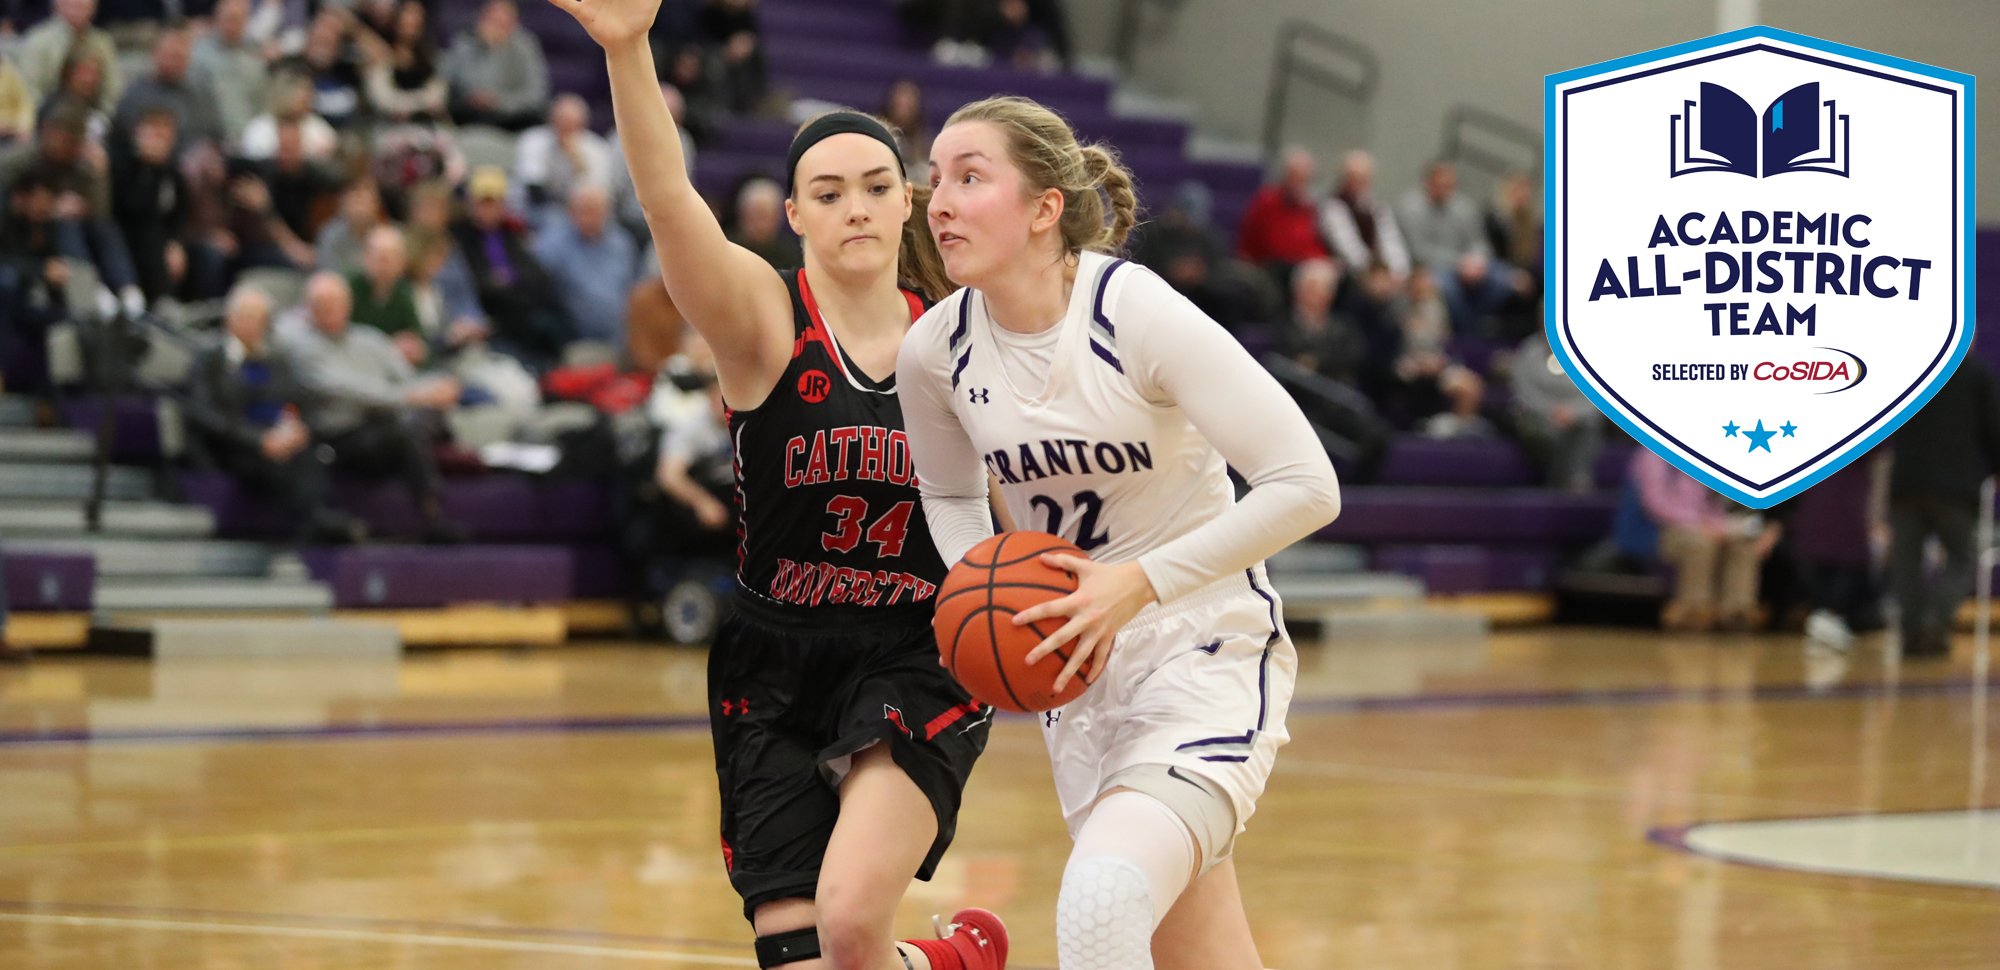 Senior Makenzie Mason was named to the CoSIDA Academic All-District First Team that was announced by the organization on Thursday afternoon.